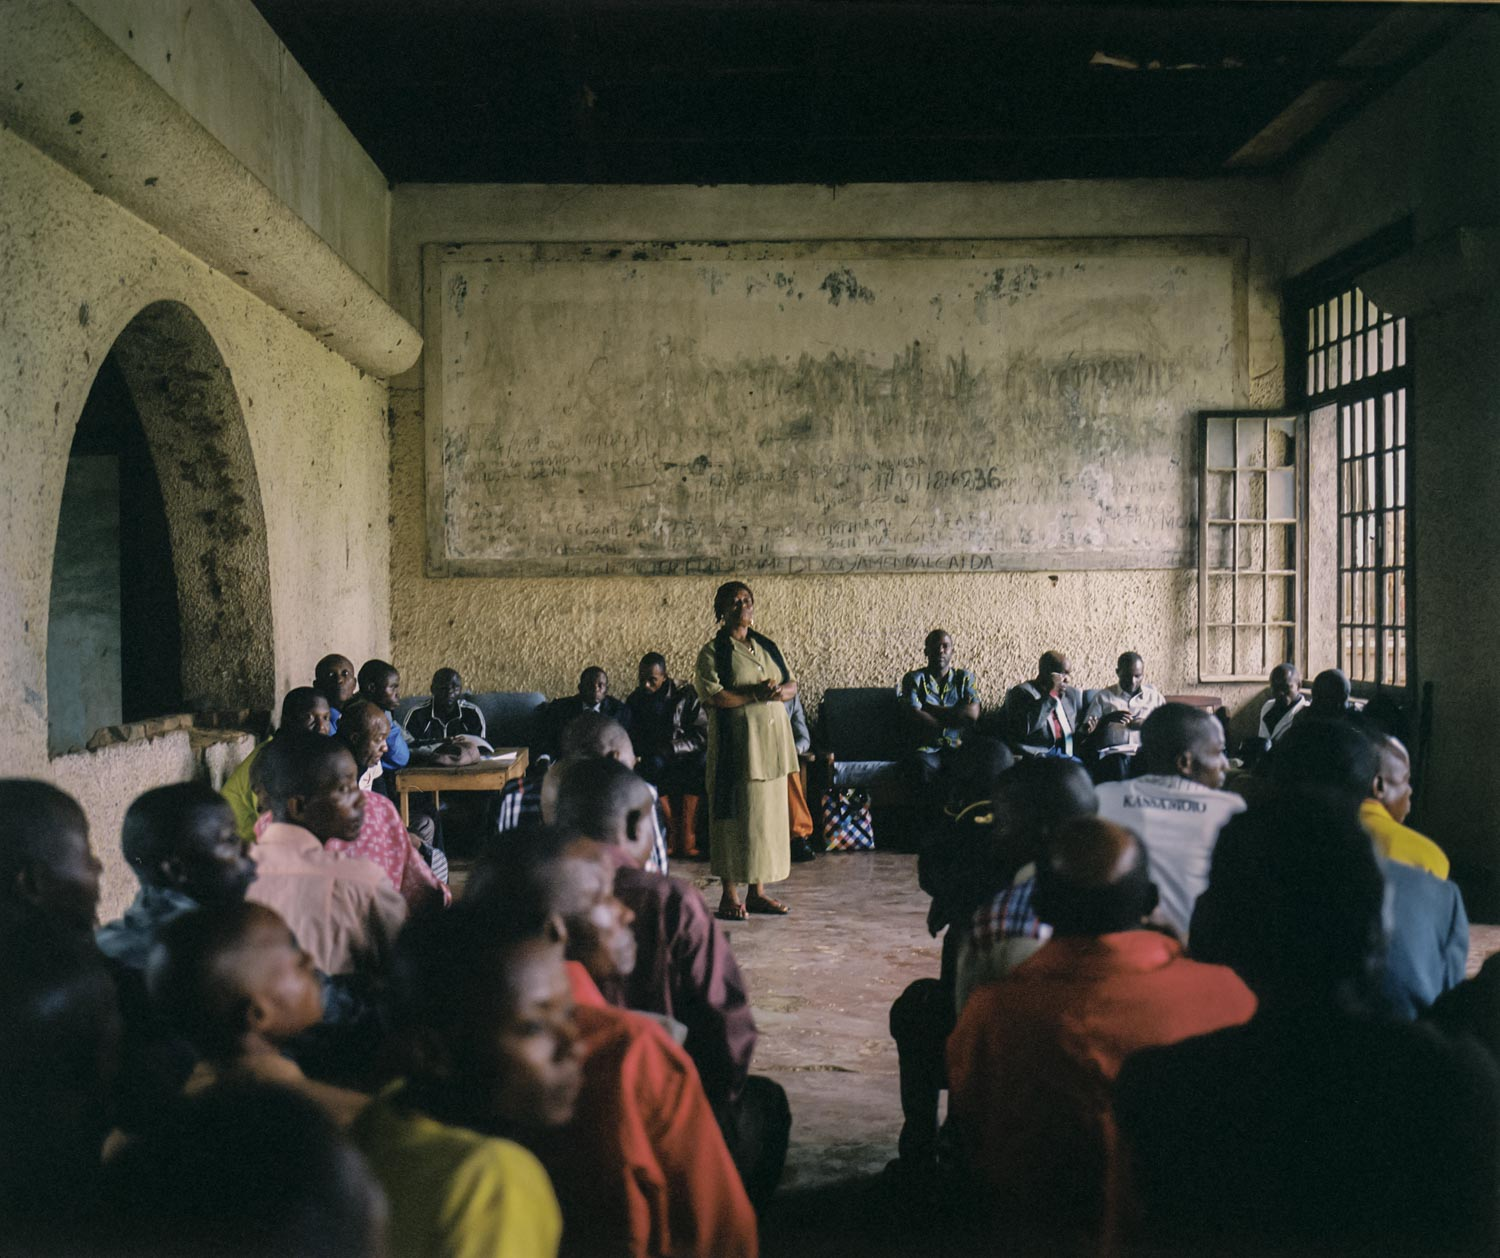 """Henriette Useni Kabake, Lulingu's government administrator, hosts a town meeting alongside traditional and Raia Mutomboki leaders inside a decayed building from the Belgian colonial era. The Raia Mutomboki insist they should not be labeled """"rebels"""" like other armed groups operating in Congo, citing that they have not interfered with the work of government officials in their territory.Dec. 28, 2013. Lulingu, South Kivu, Democratic Republic of the Congo."""